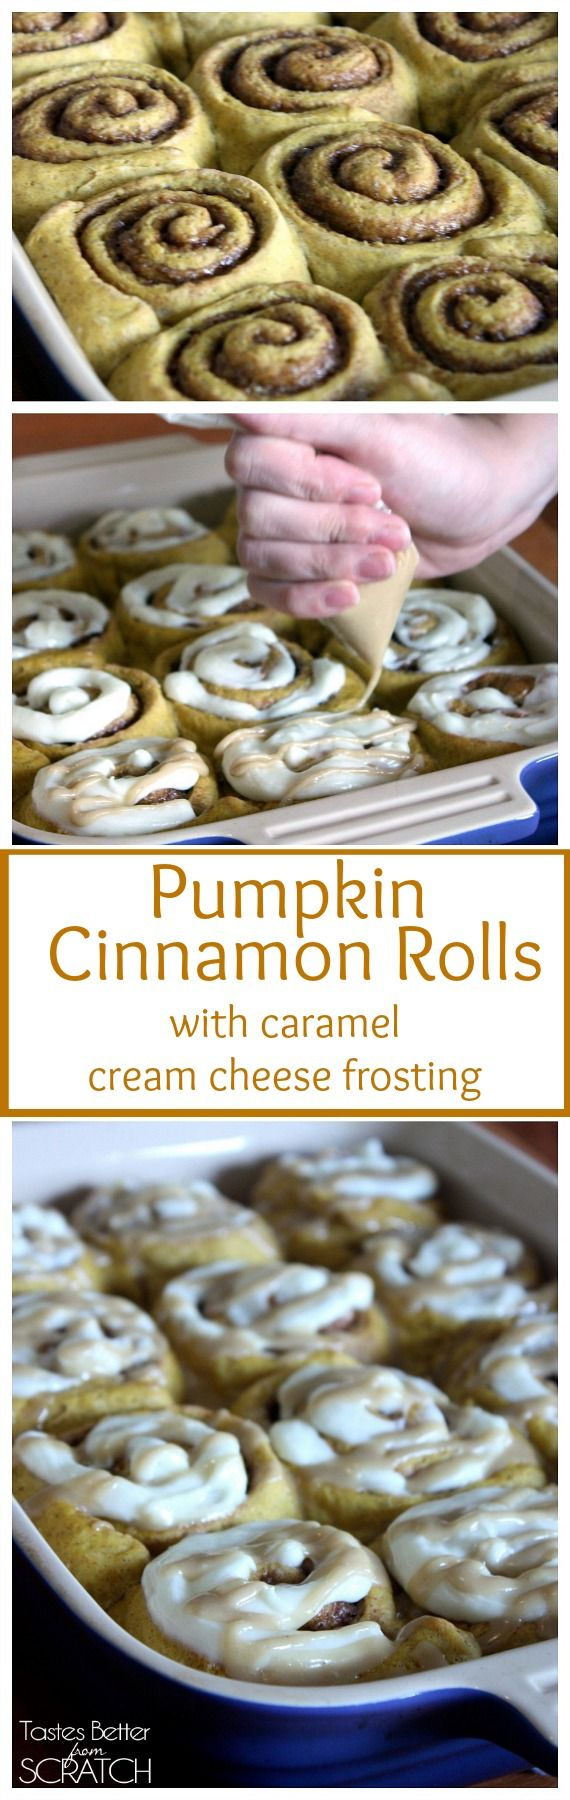 , Pumpkin, Cream Cheese, Cheese Frosting, Caramel Frosting, Breakfast ...